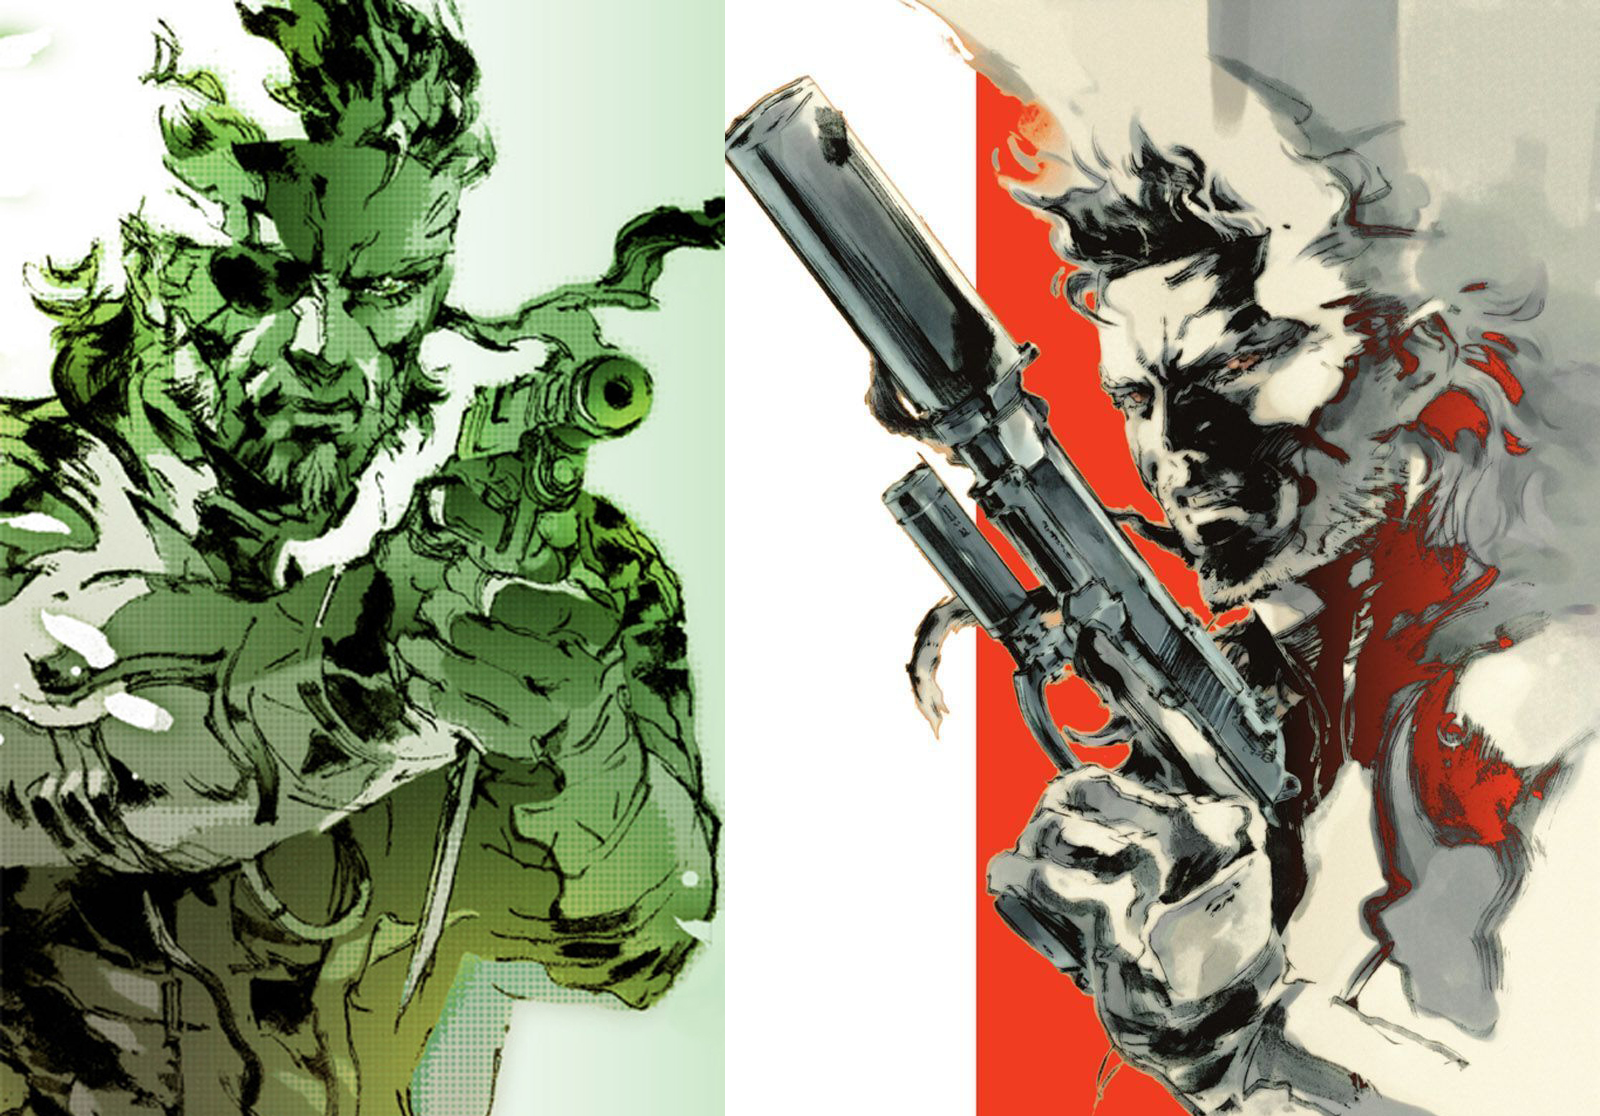 The Daily Zombies Metal Gear Solid Hd Collection Announced E3 2011